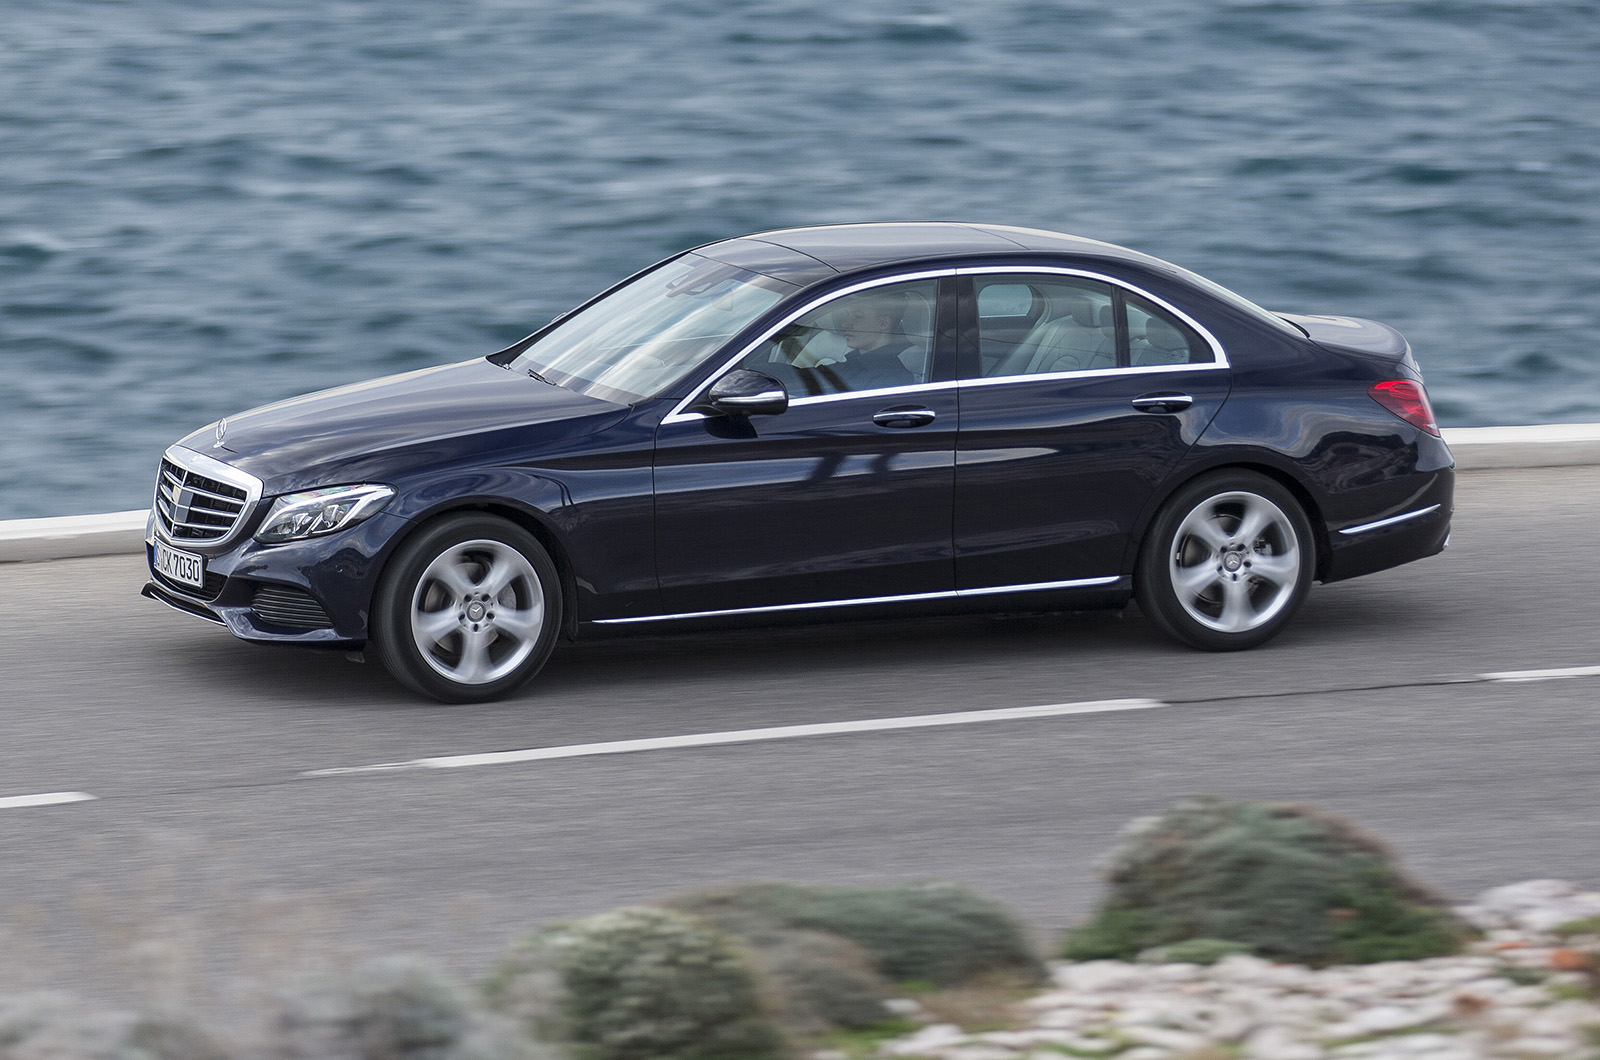 2014 mercedes benz c class c250 first drive. Black Bedroom Furniture Sets. Home Design Ideas